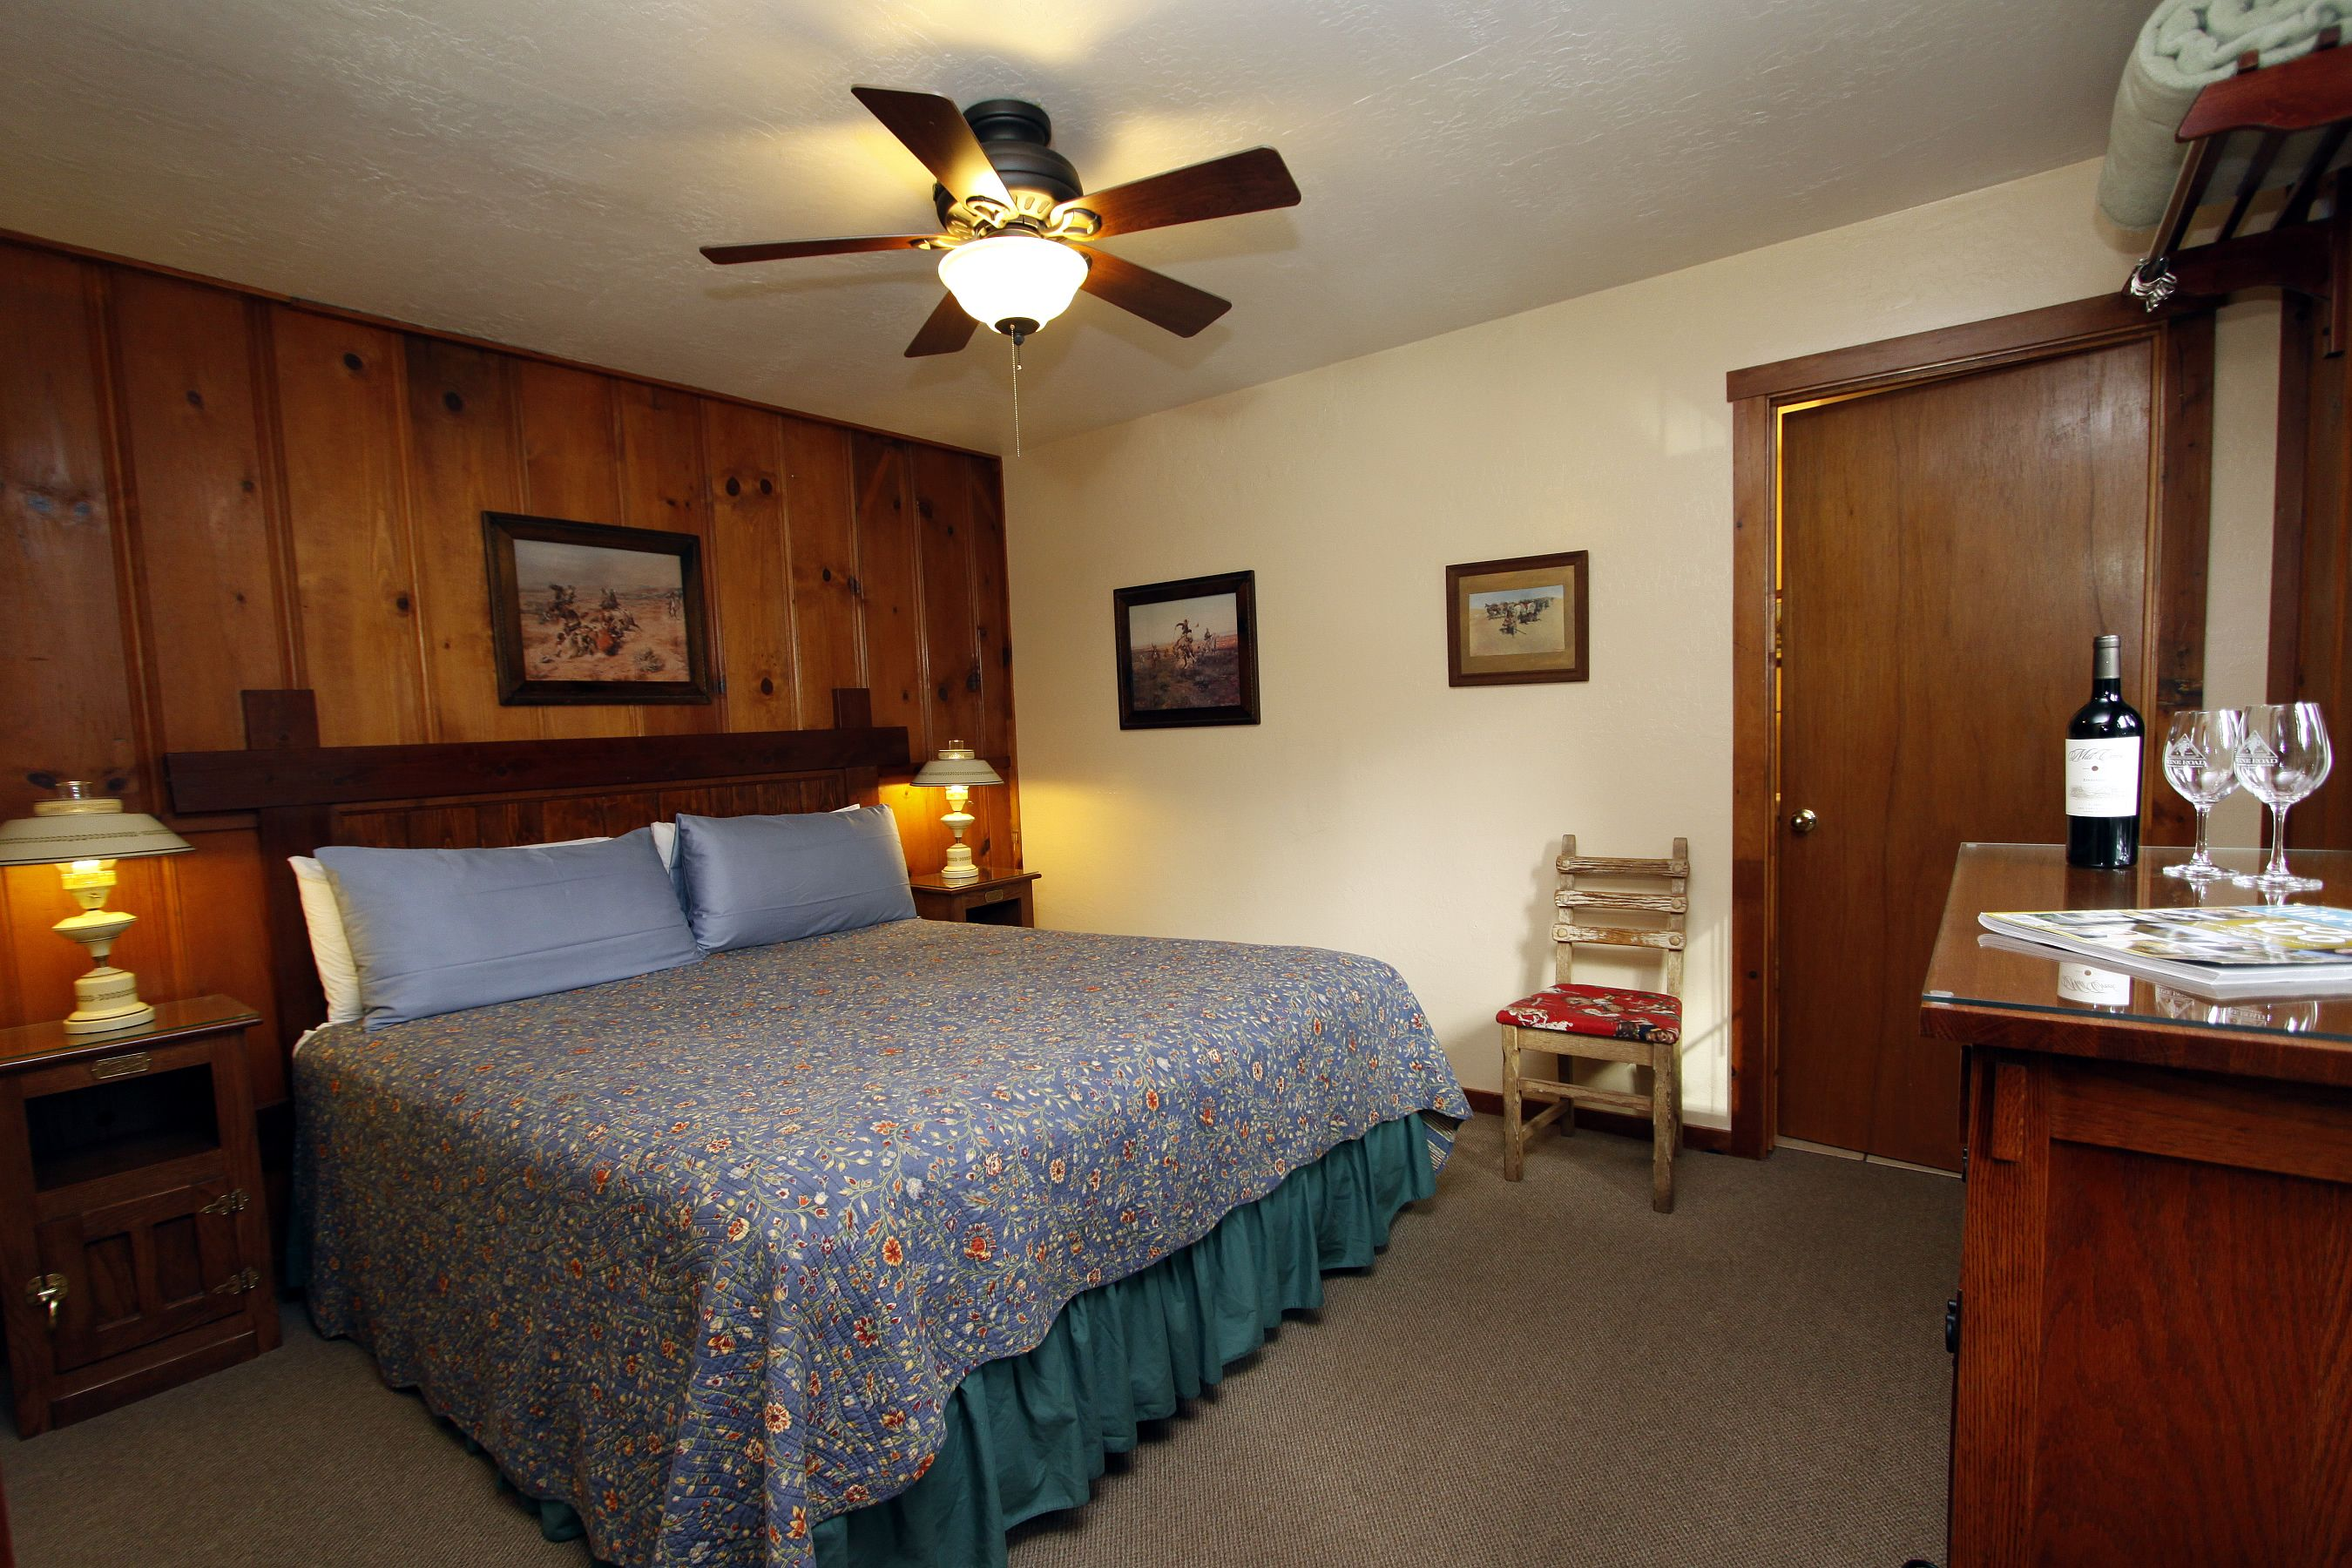 cottage 17 bedroom Bed, Bed and breakfast, Cottage bed